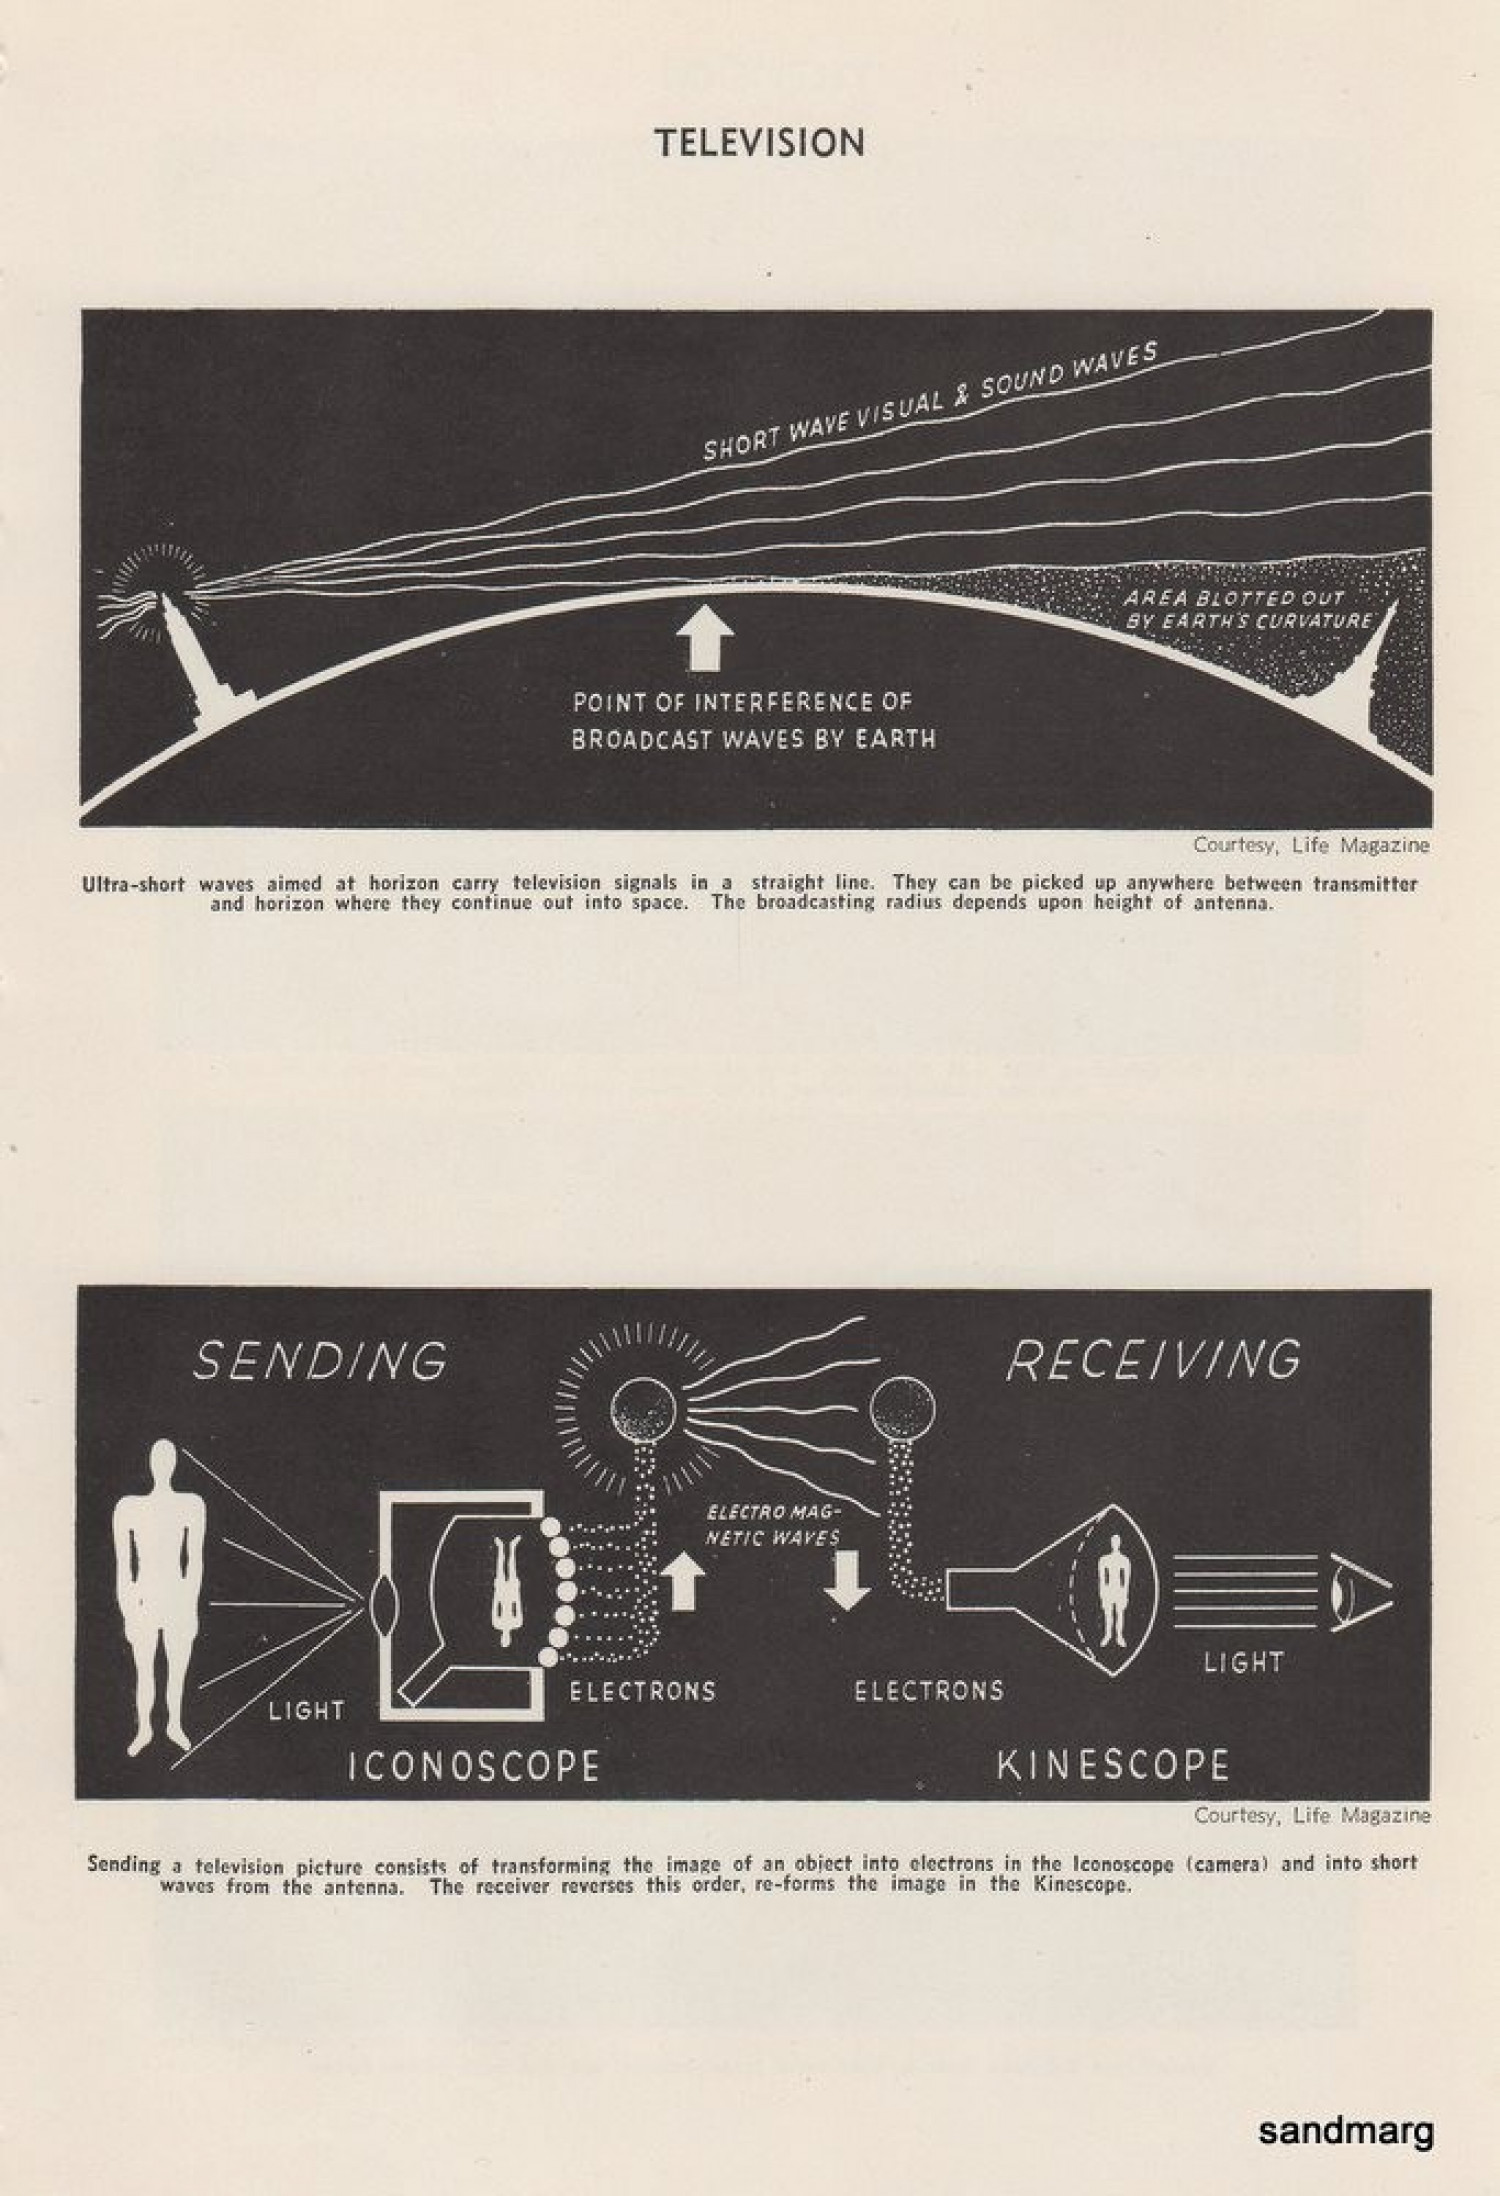 How 1940s Television Worked Infographic